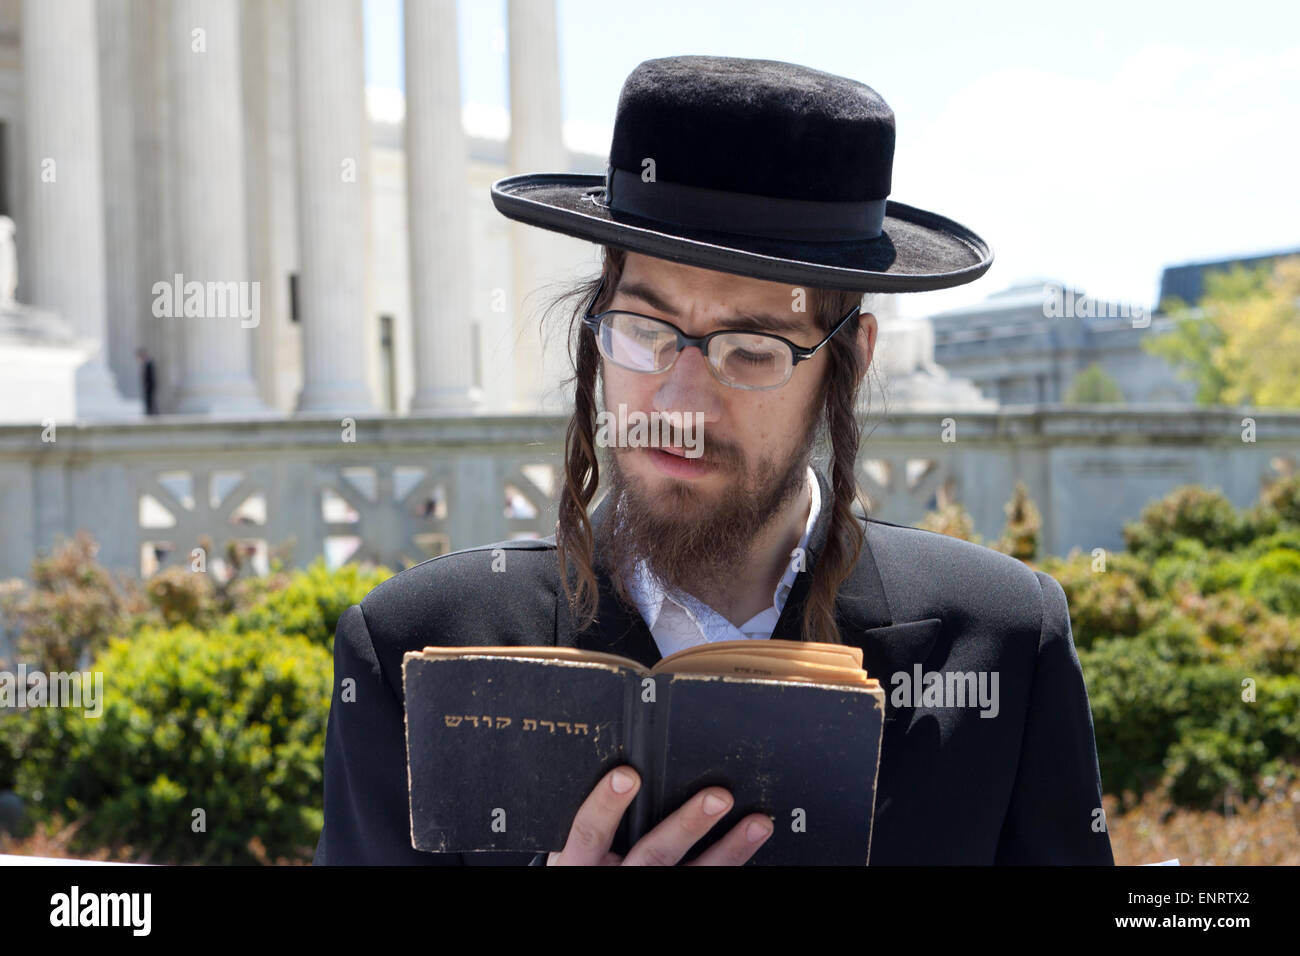 Hasidic Orthodox Jewish man reading the Torah in front of the US Supreme Court building - Washington, DC USA - Stock Image